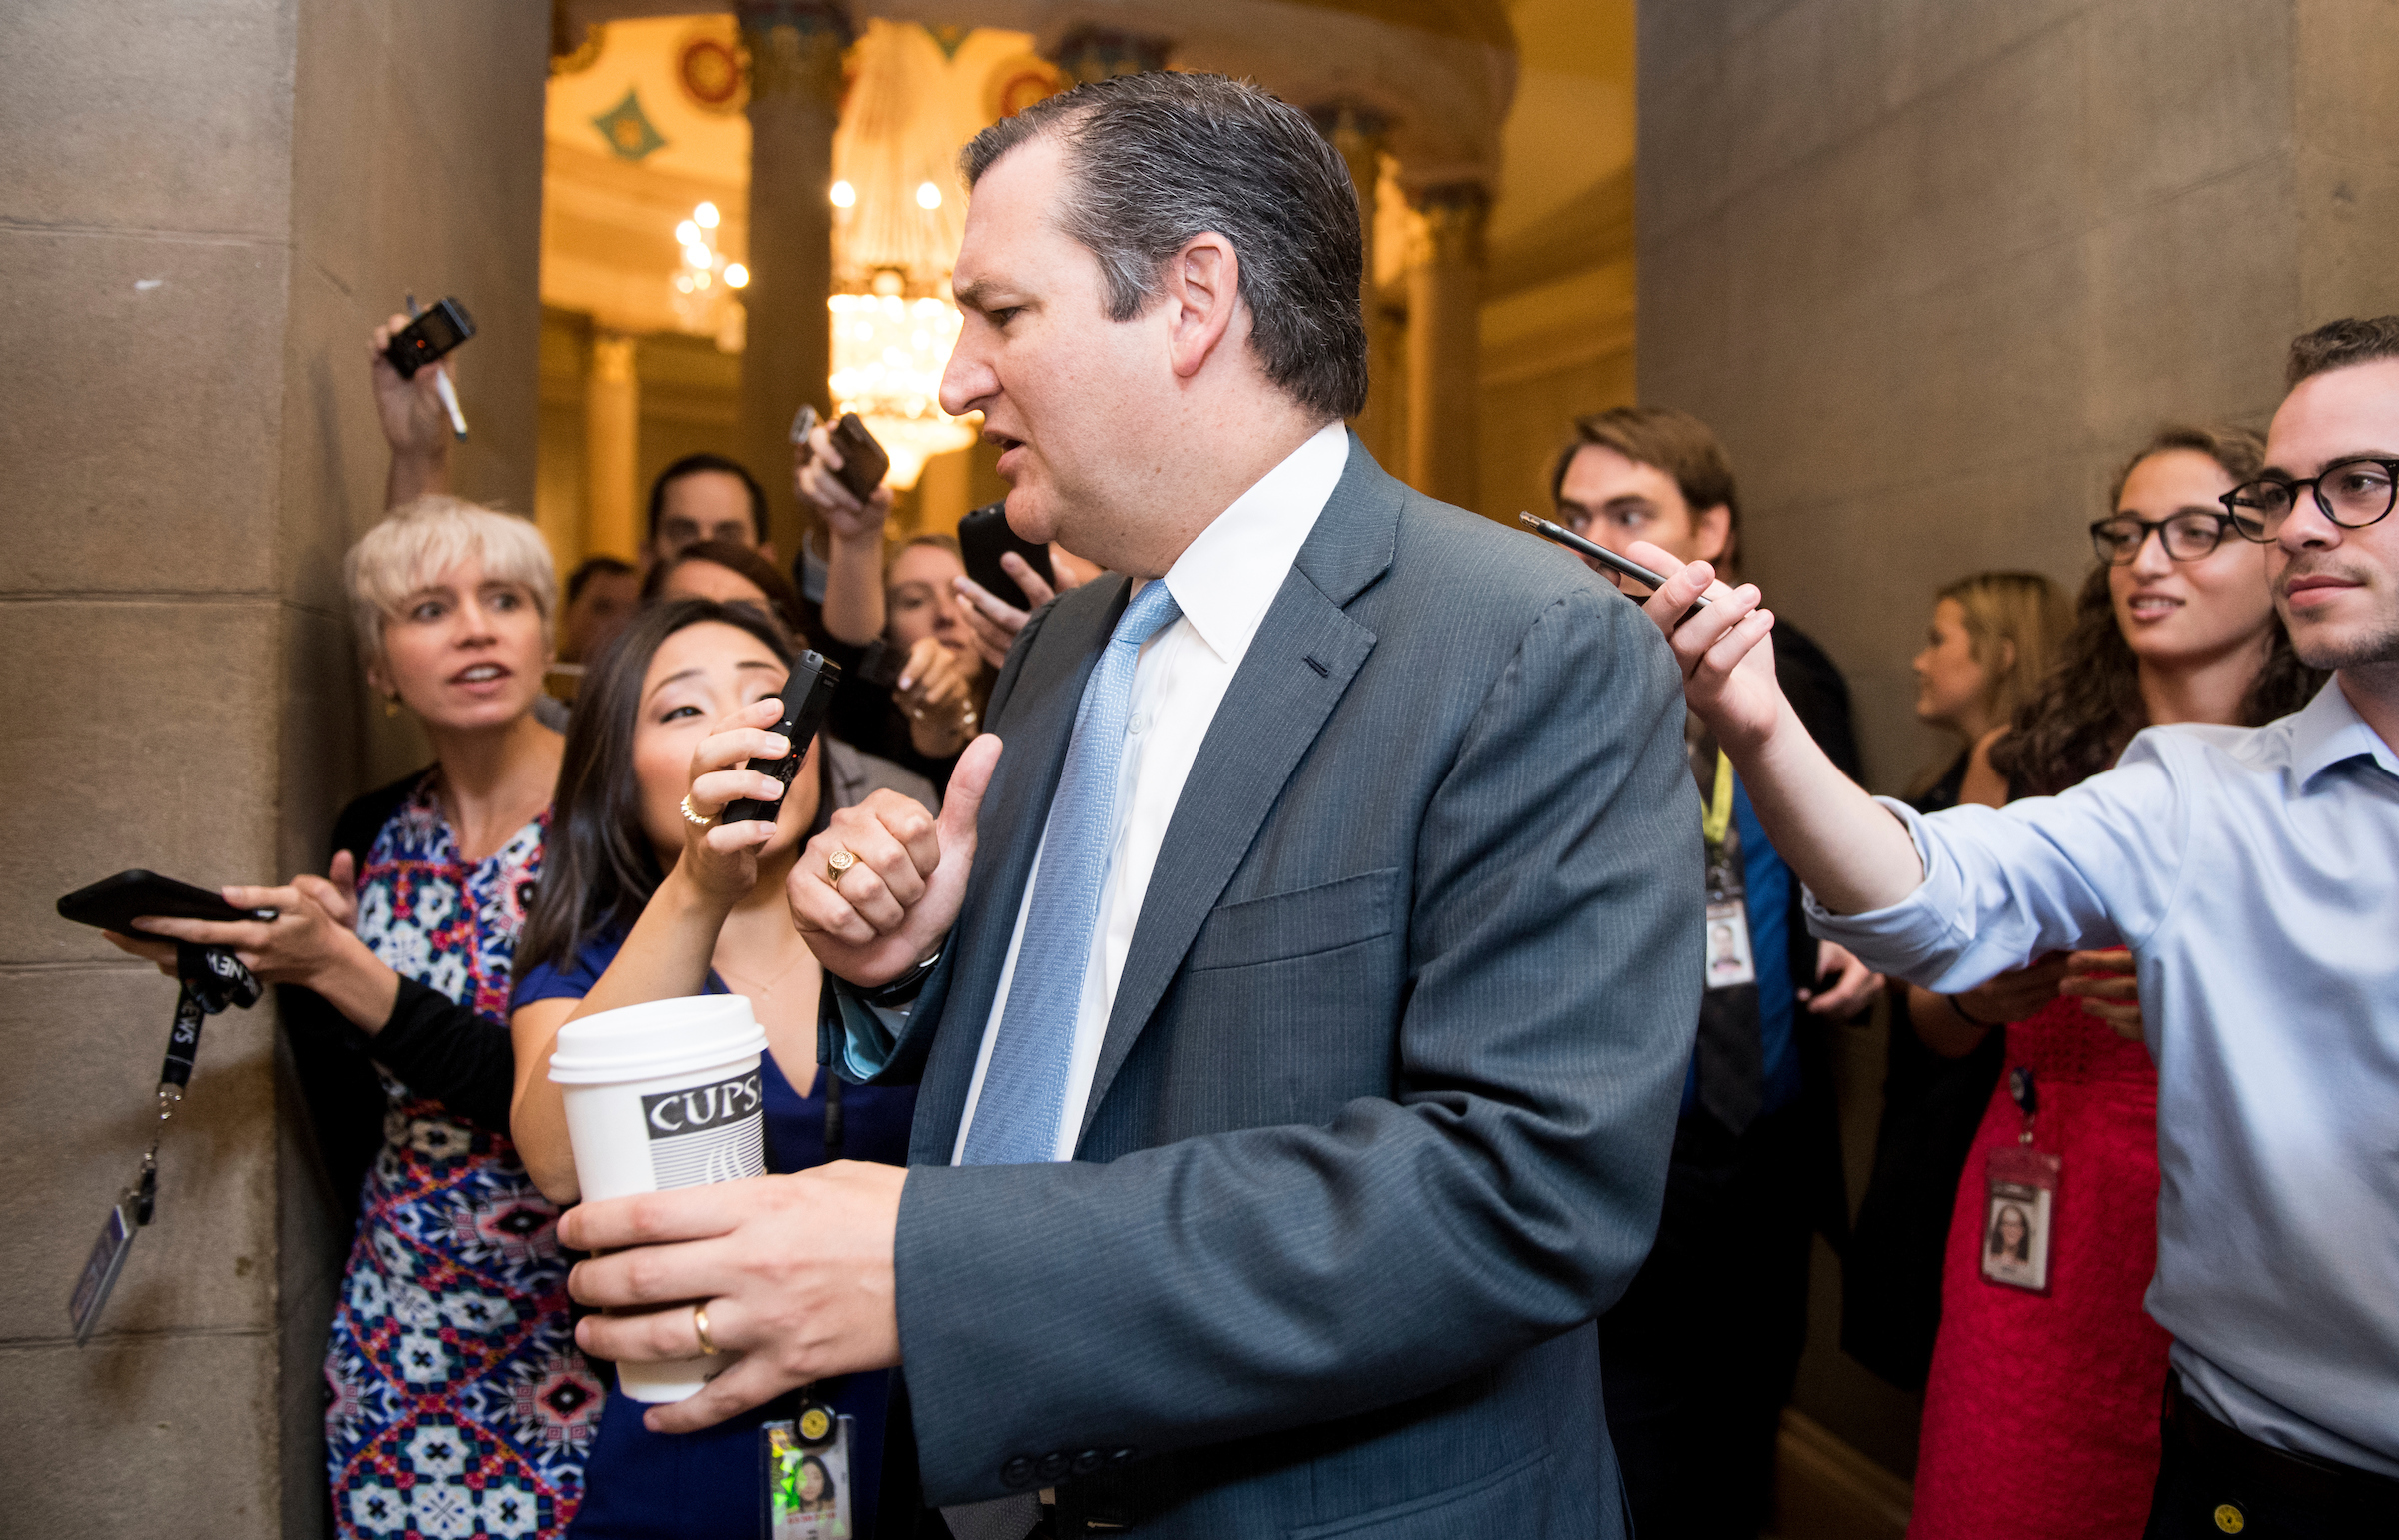 Sen. Ted Cruz, R-Texas, arrives for the meeting for the unveiling of the Senate Republicans' new version of health care plan on Thursday, July 13, 2017. (Photo By Bill Clark/CQ Roll Call)